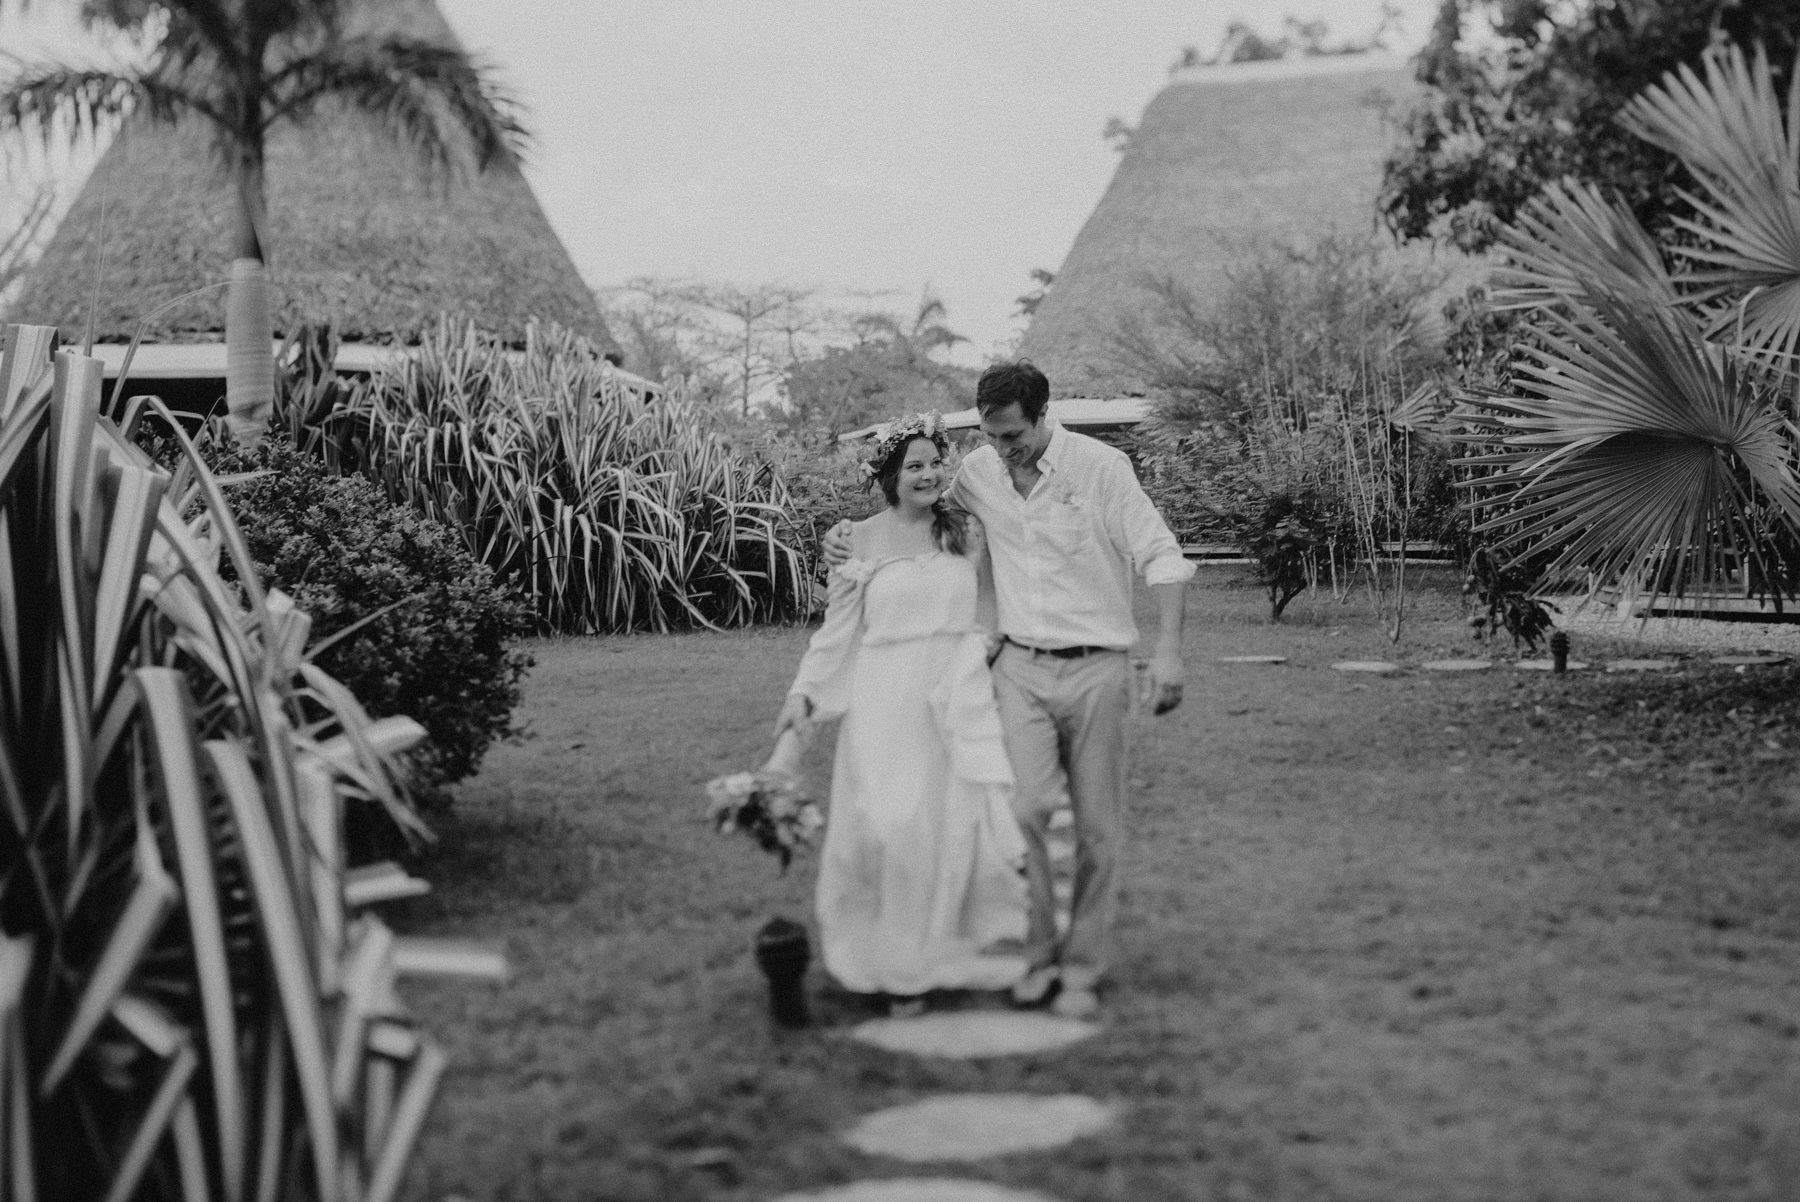 playa-negra-costa-rica-wedding-photographer-87.jpg